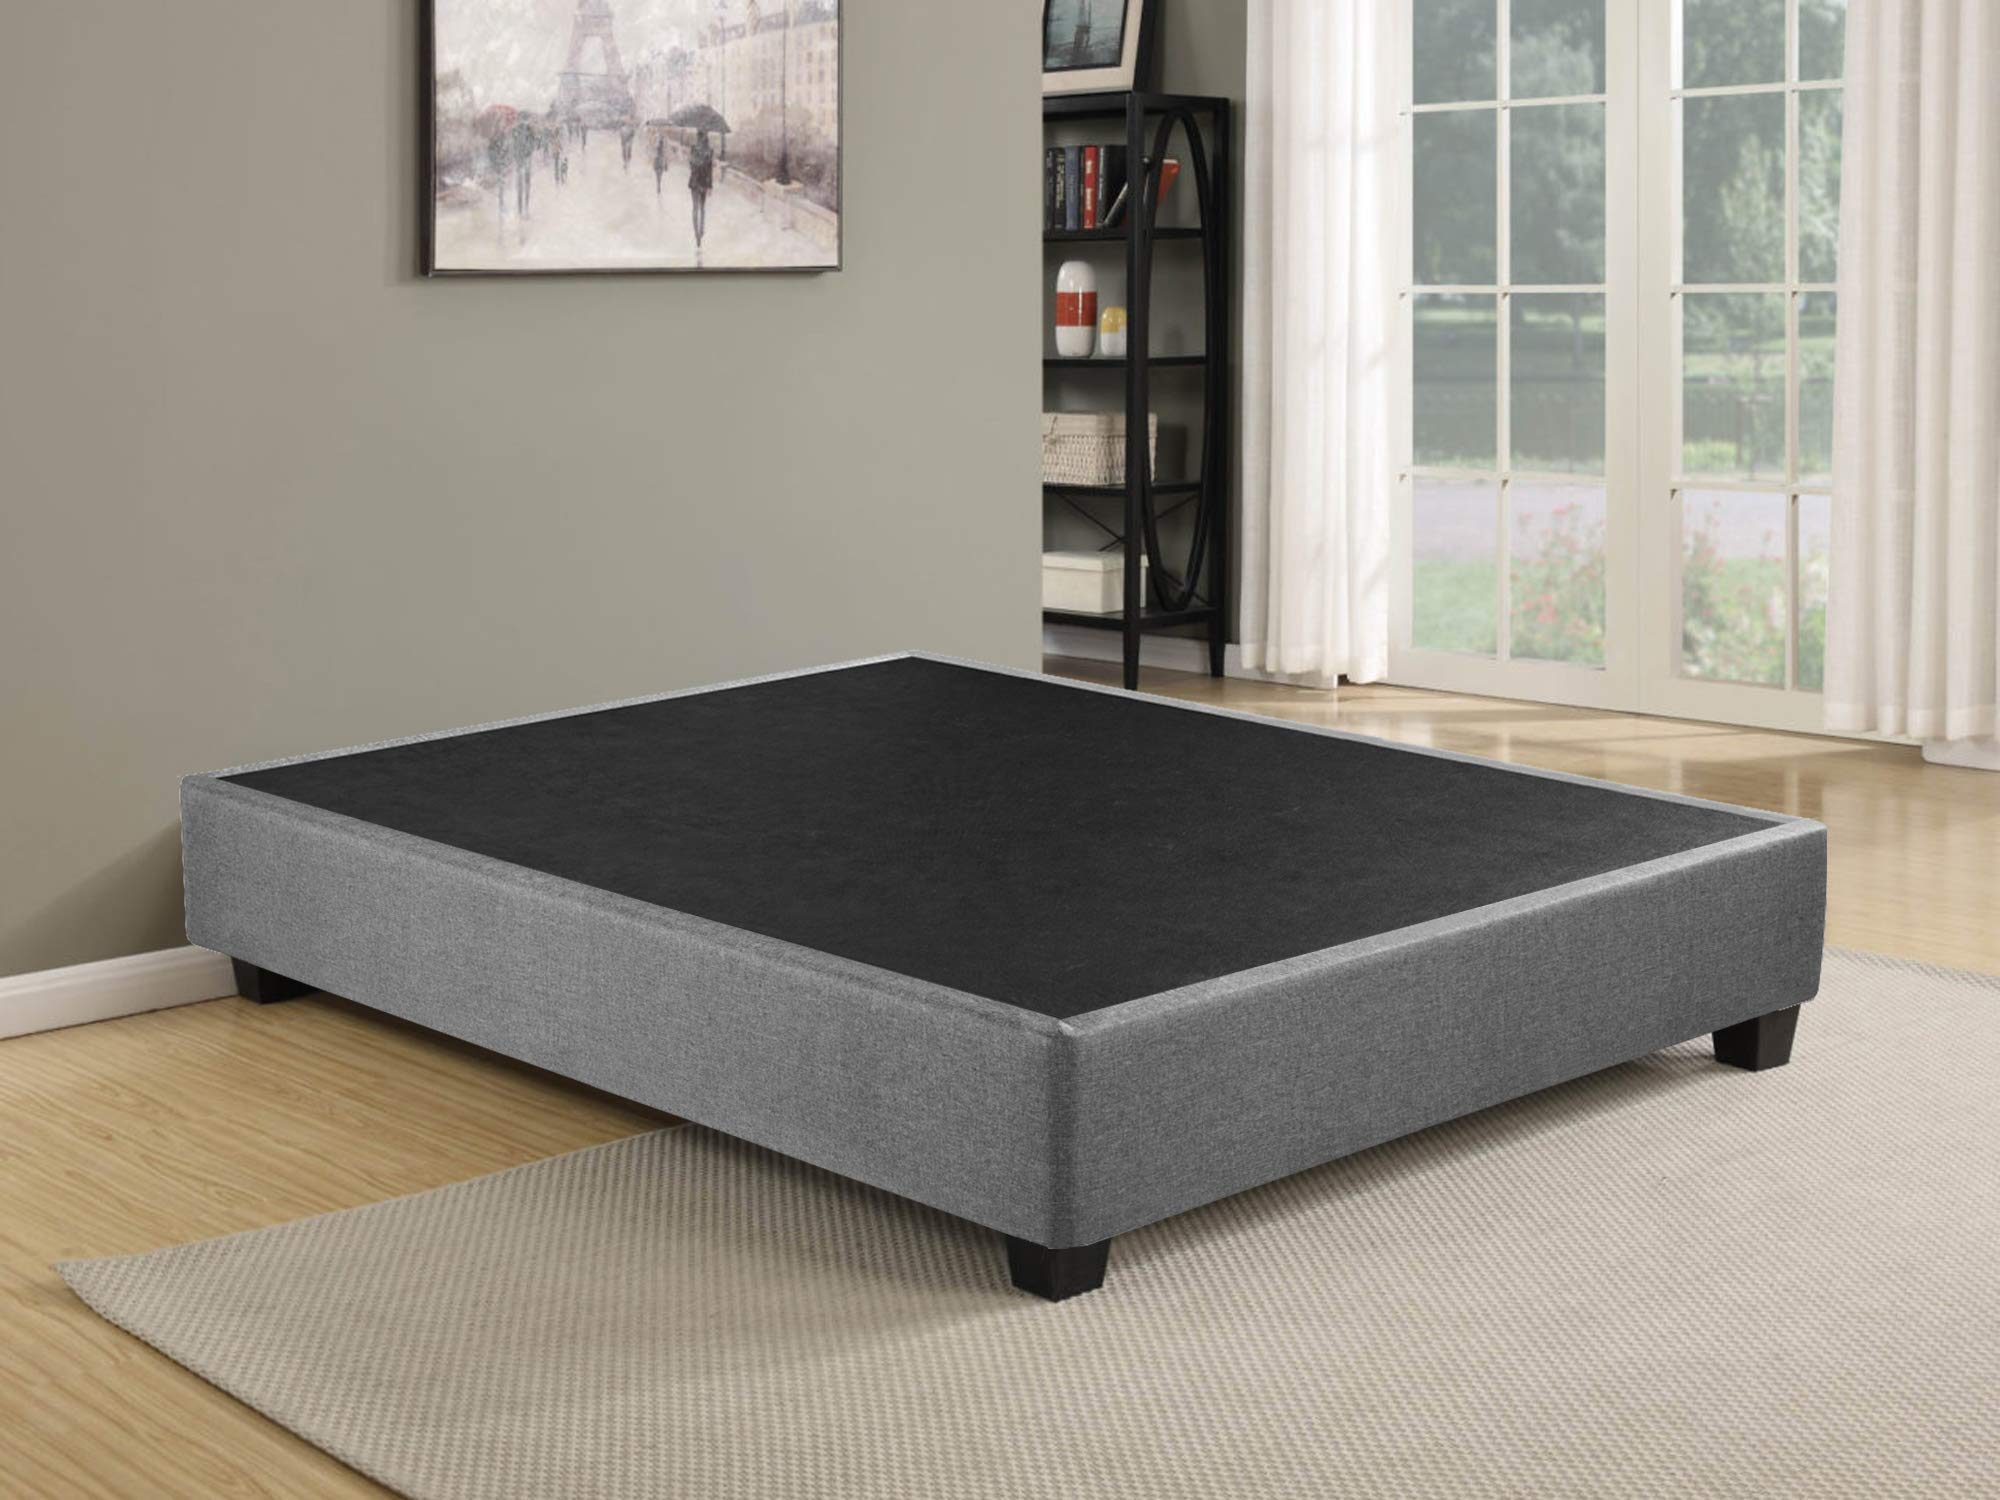 Spring Solution 60EBA-6/6 Platform Mattress, Eliminates Need of Box Spring and Bed Frame, King Size